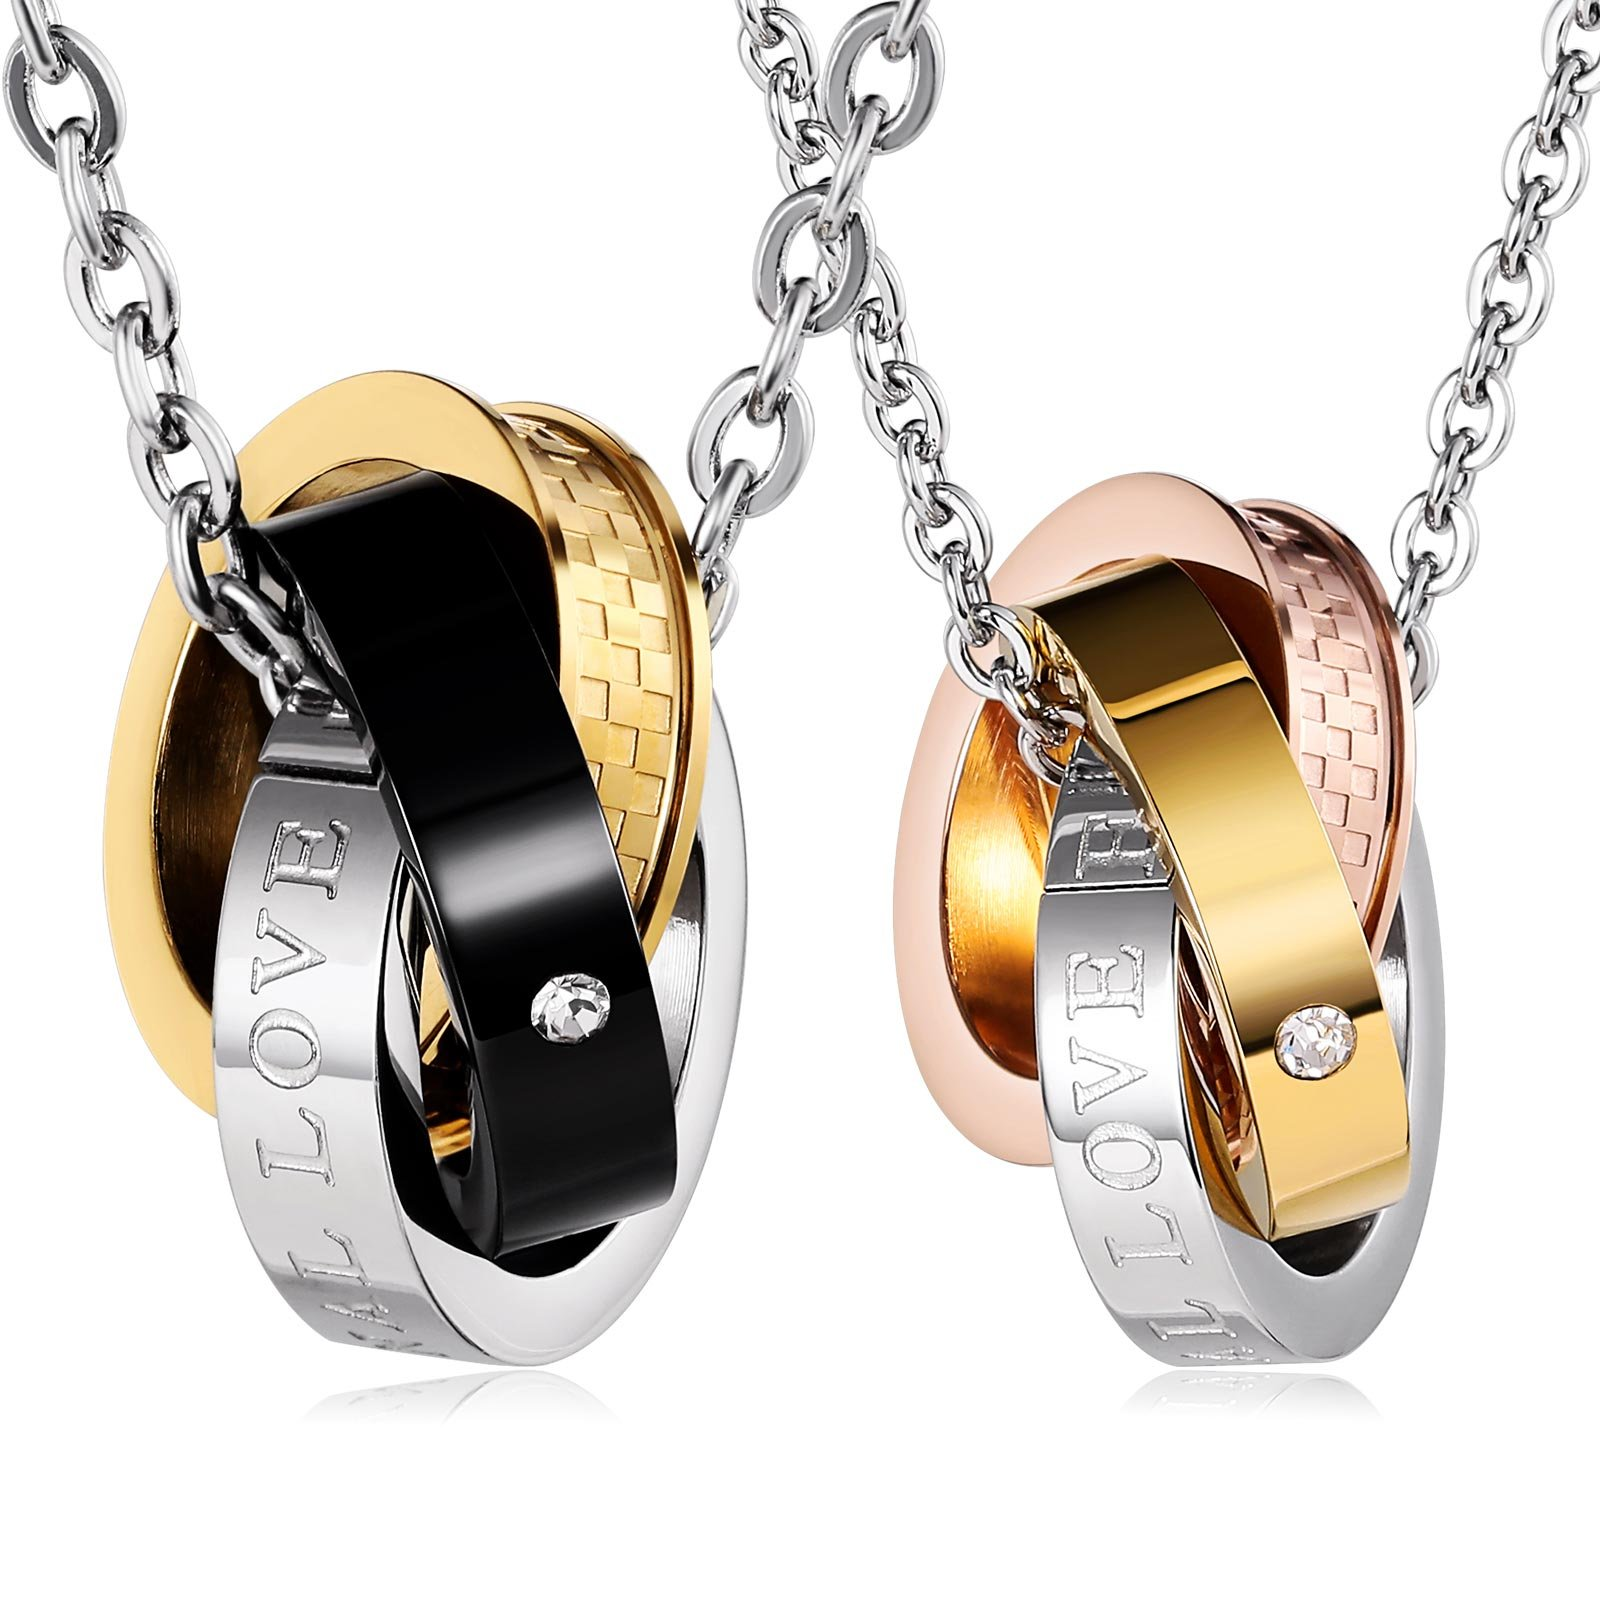 Aienid Stainless Steel Necklaces Set for Couple Eternal Love Pendant Neckalce with Chain